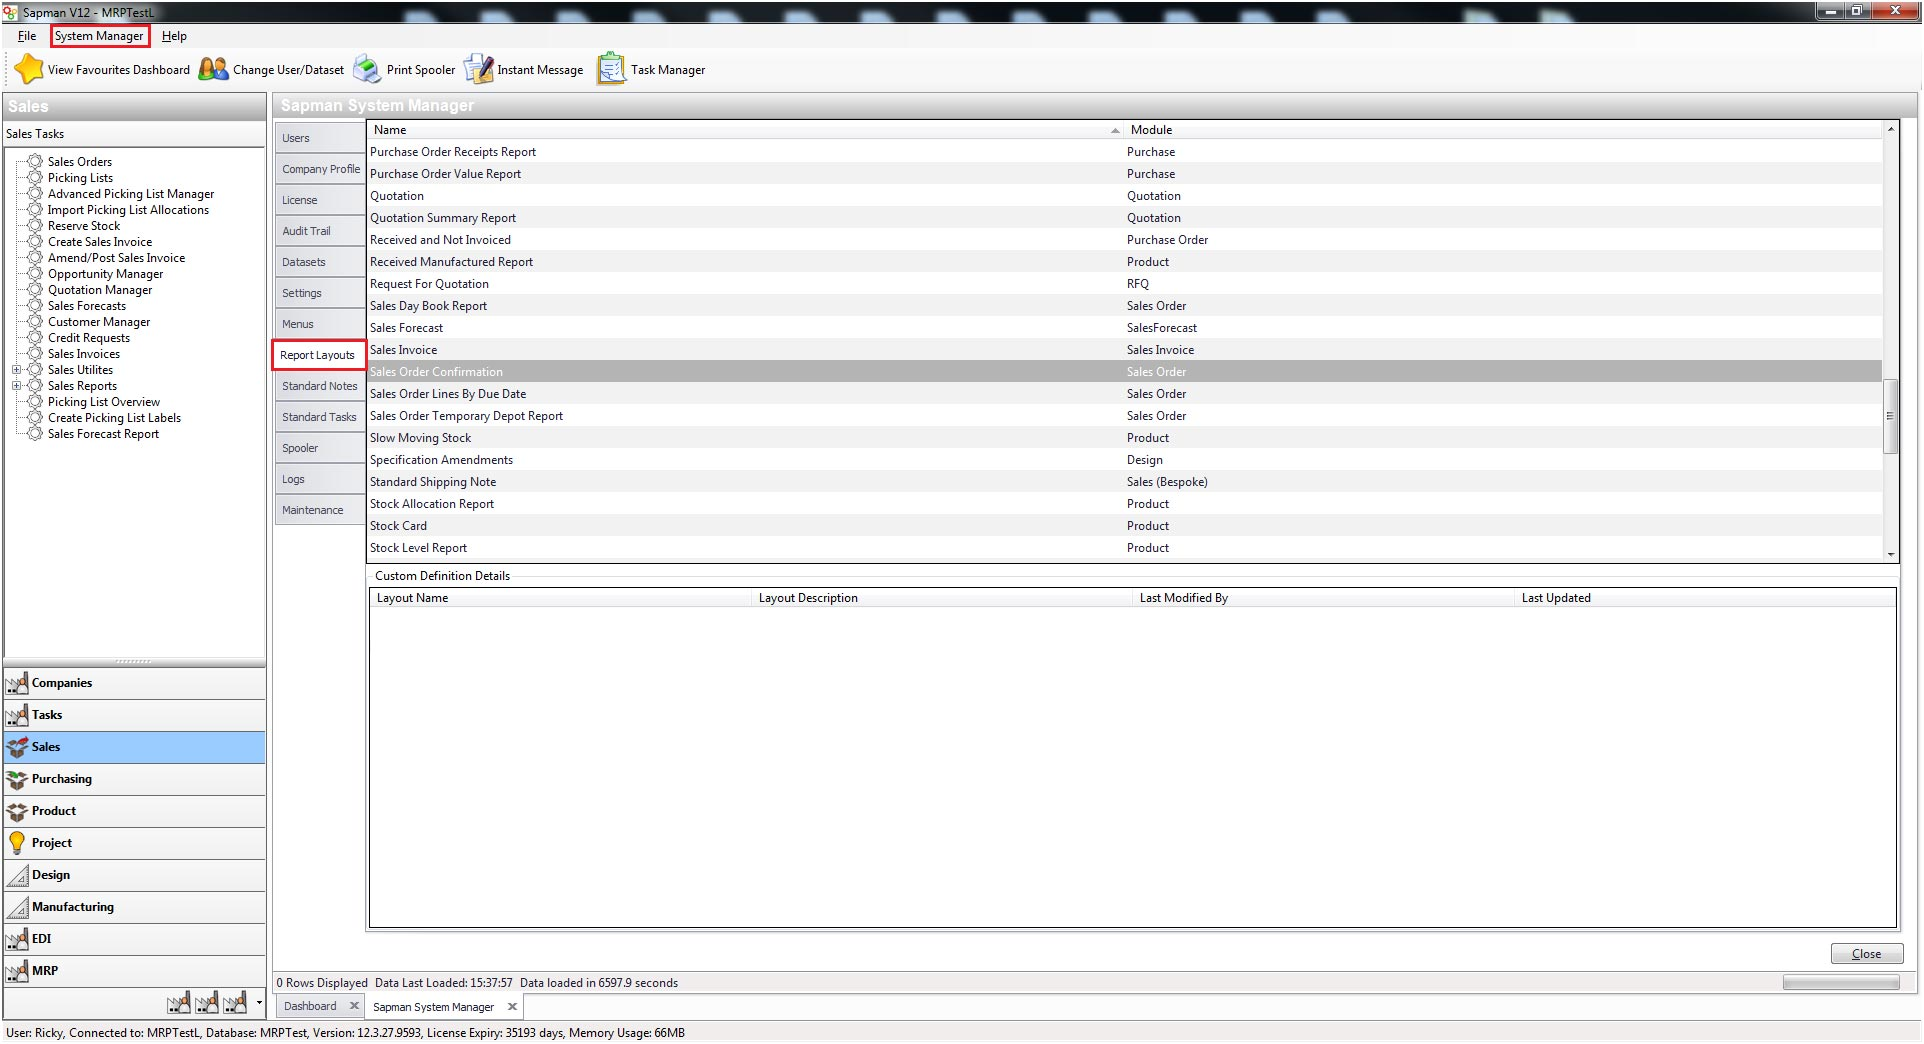 Sapman v12 System Manager Reports screen